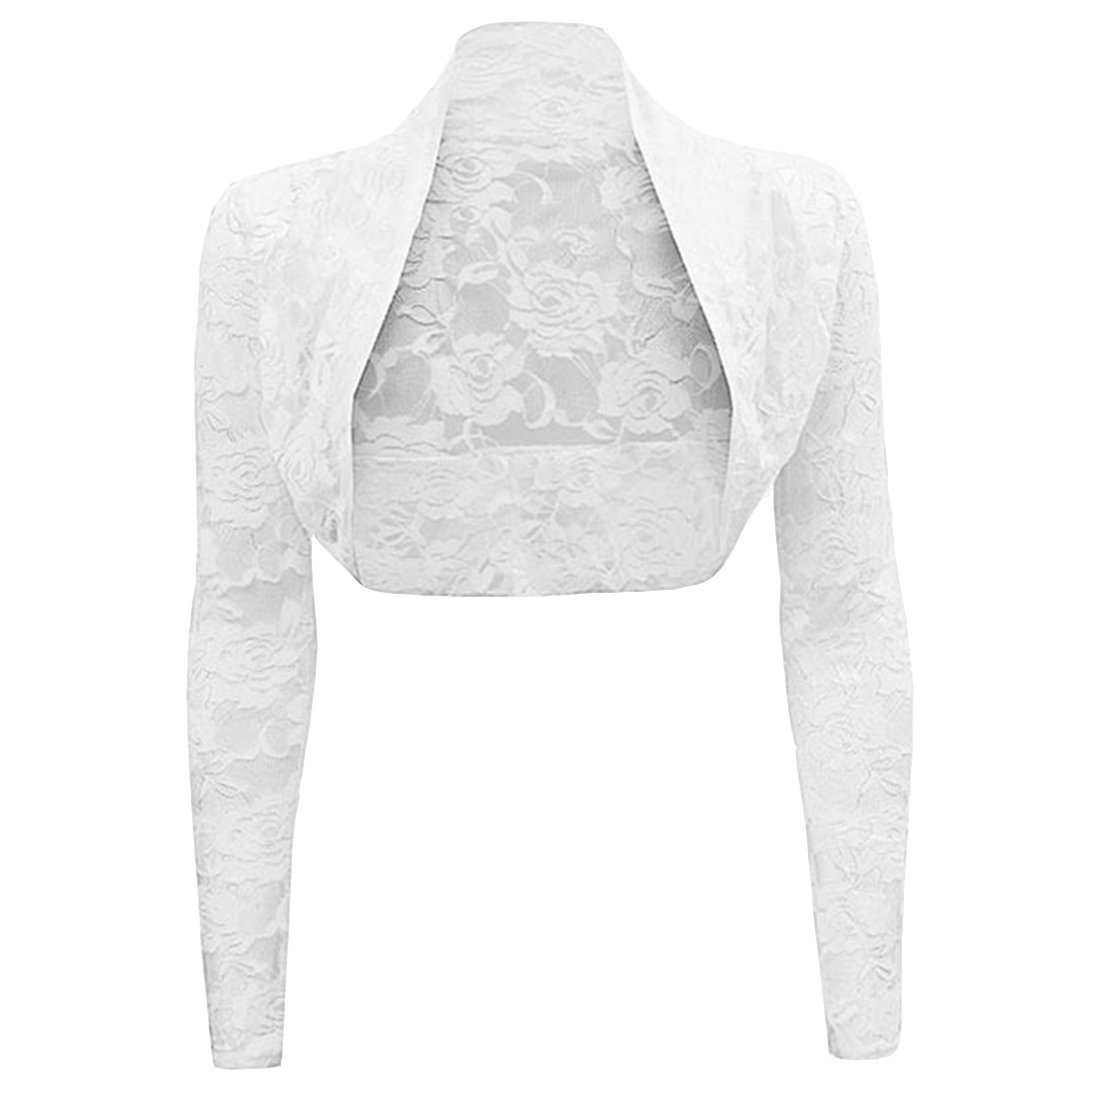 Ez-sofei Women's Sheer Lace Bolero Shrug Jacket Cardigans Plus Size (White, 4XL)